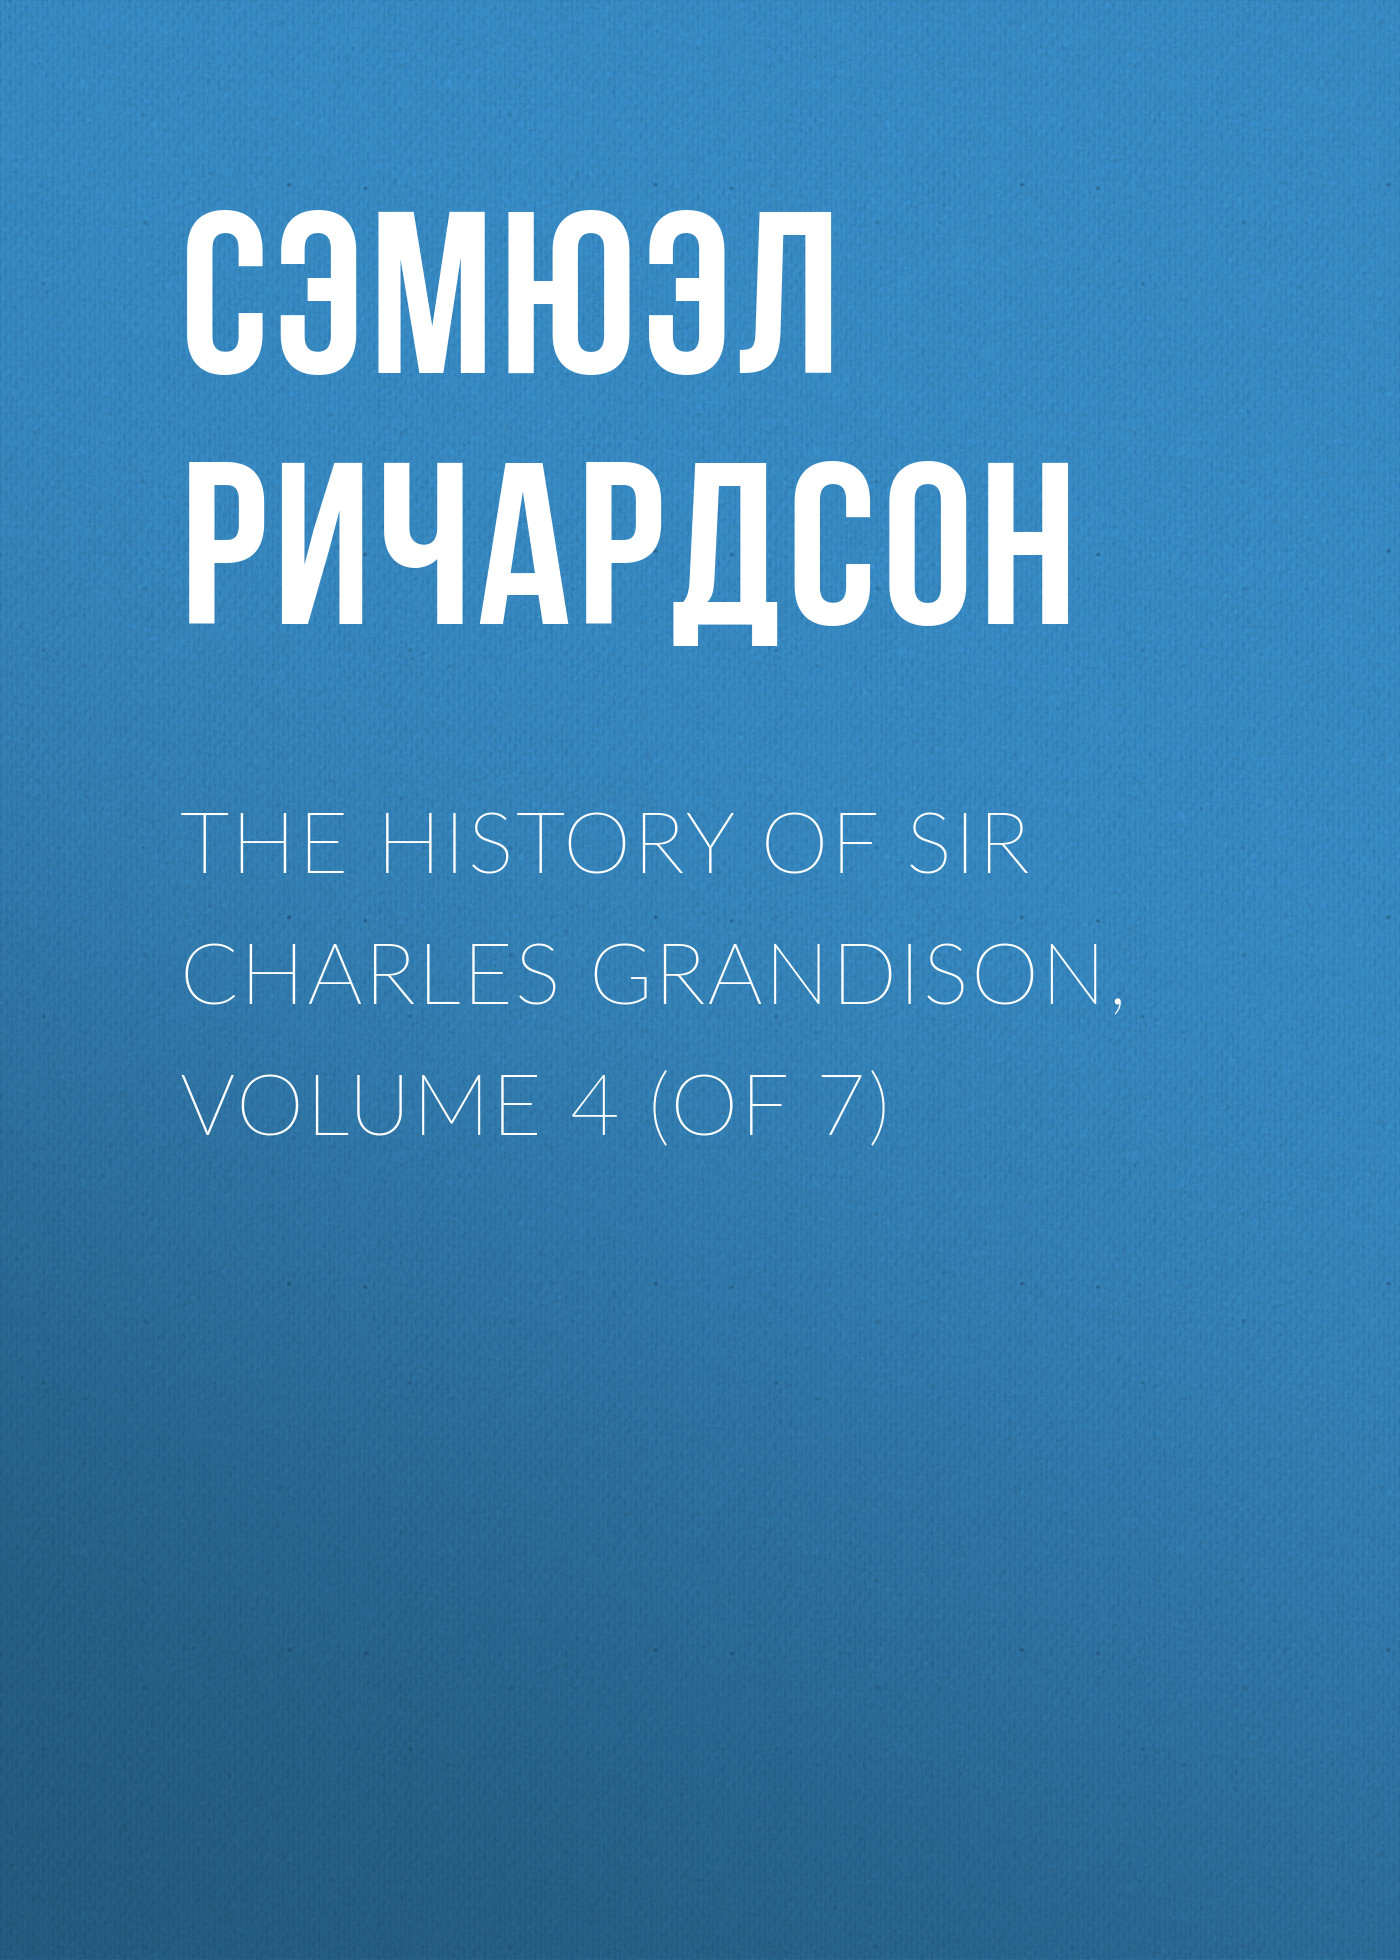 Сэмюэл Ричардсон The History of Sir Charles Grandison, Volume 4 (of 7) de coster charles the legend of ulenspiegel volume 2 of 2